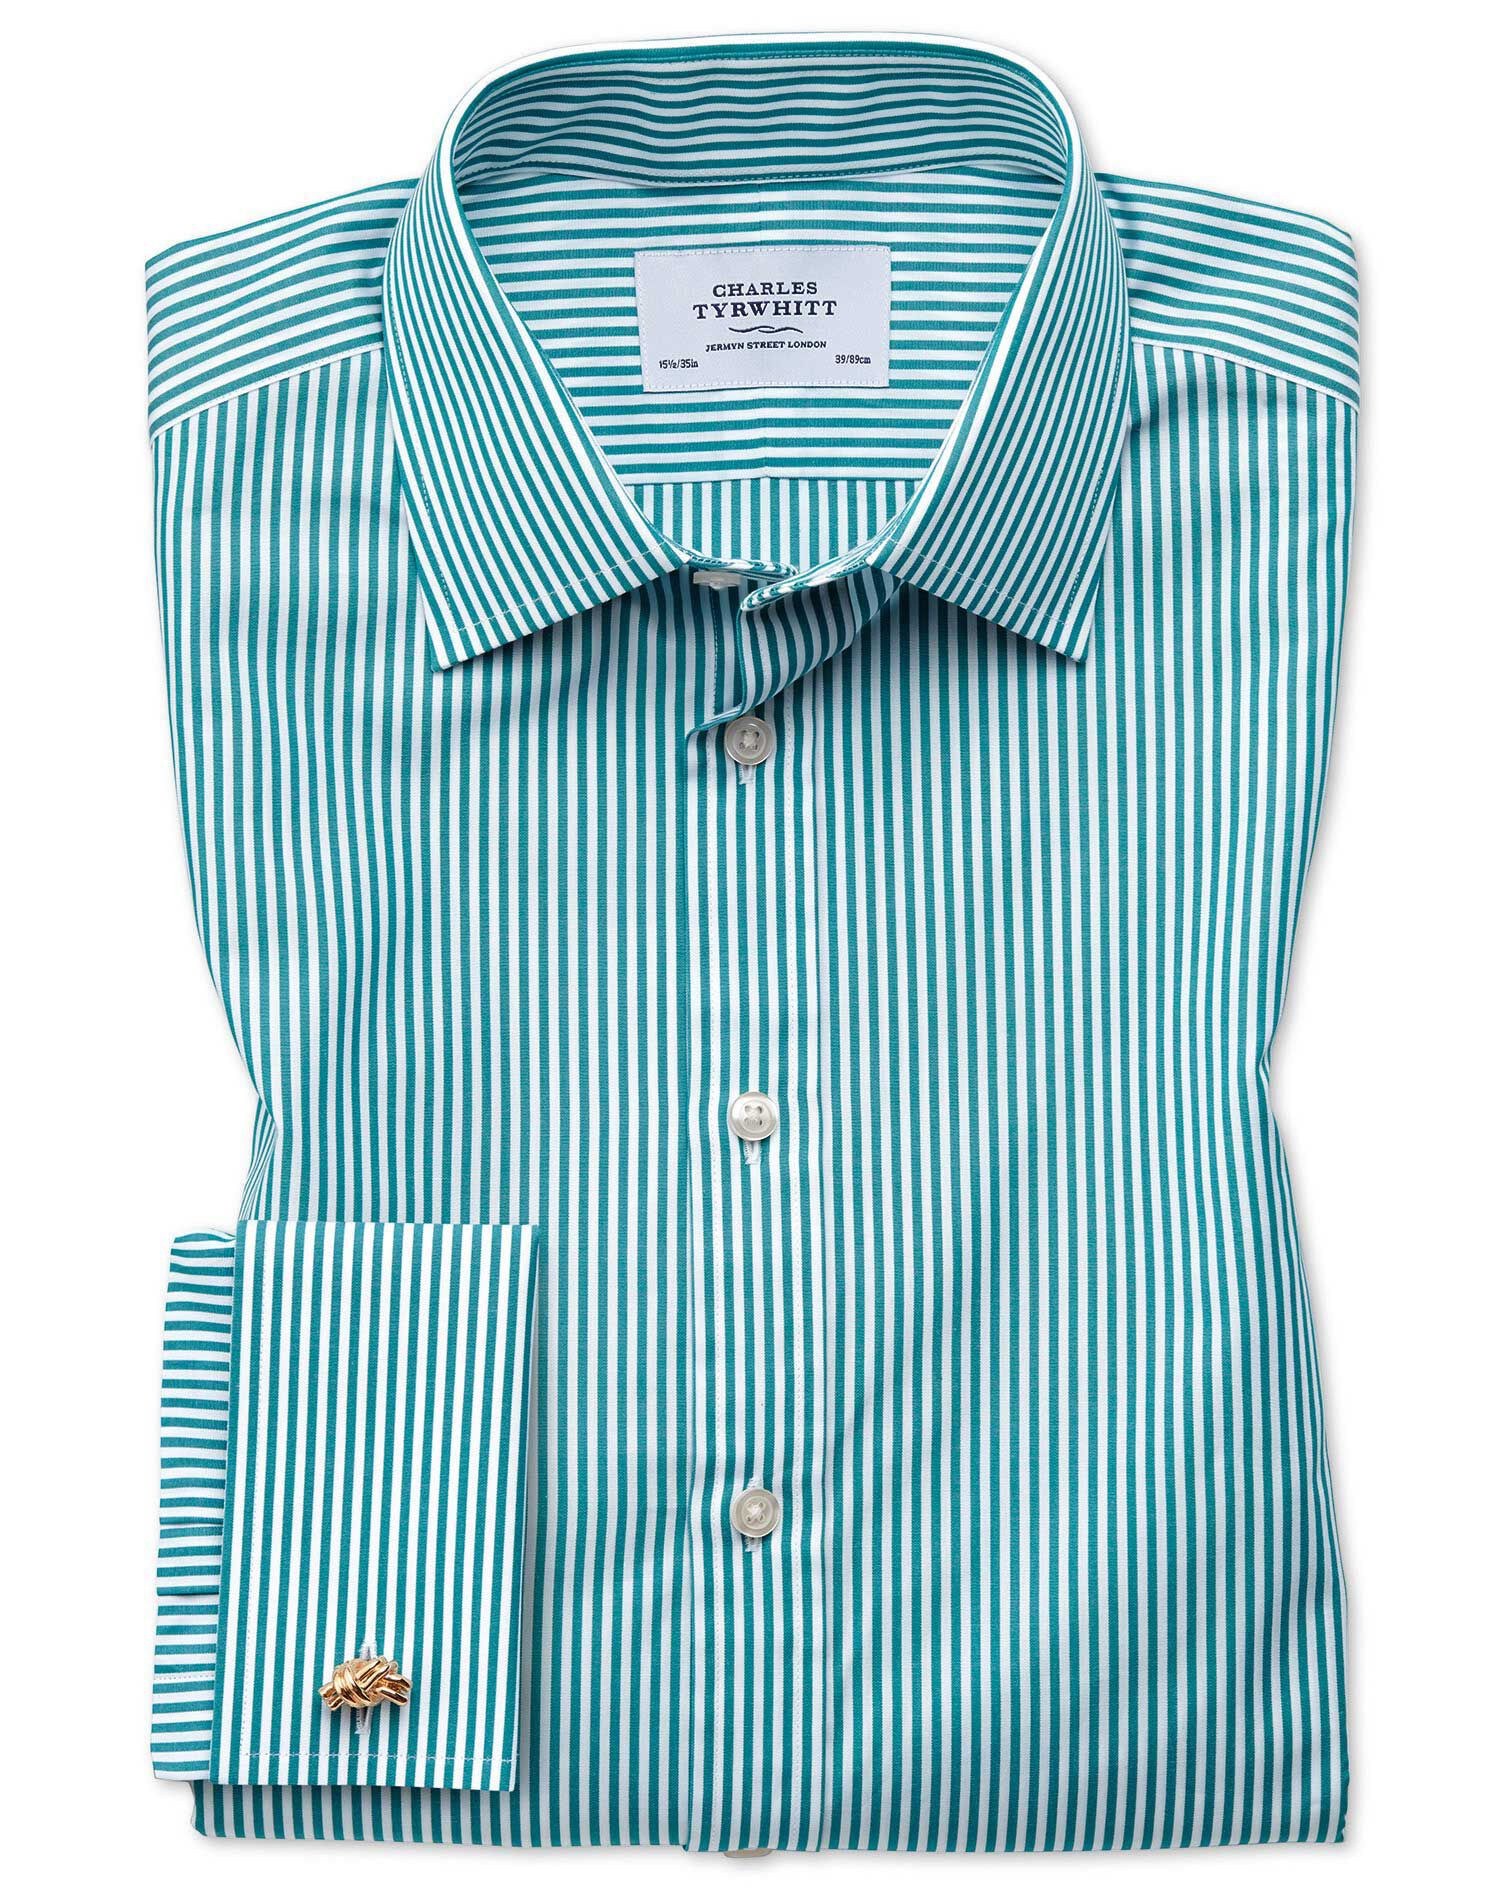 Classic Fit Bengal Stripe Green Cotton Formal Shirt Single Cuff Size 15.5/34 by Charles Tyrwhitt